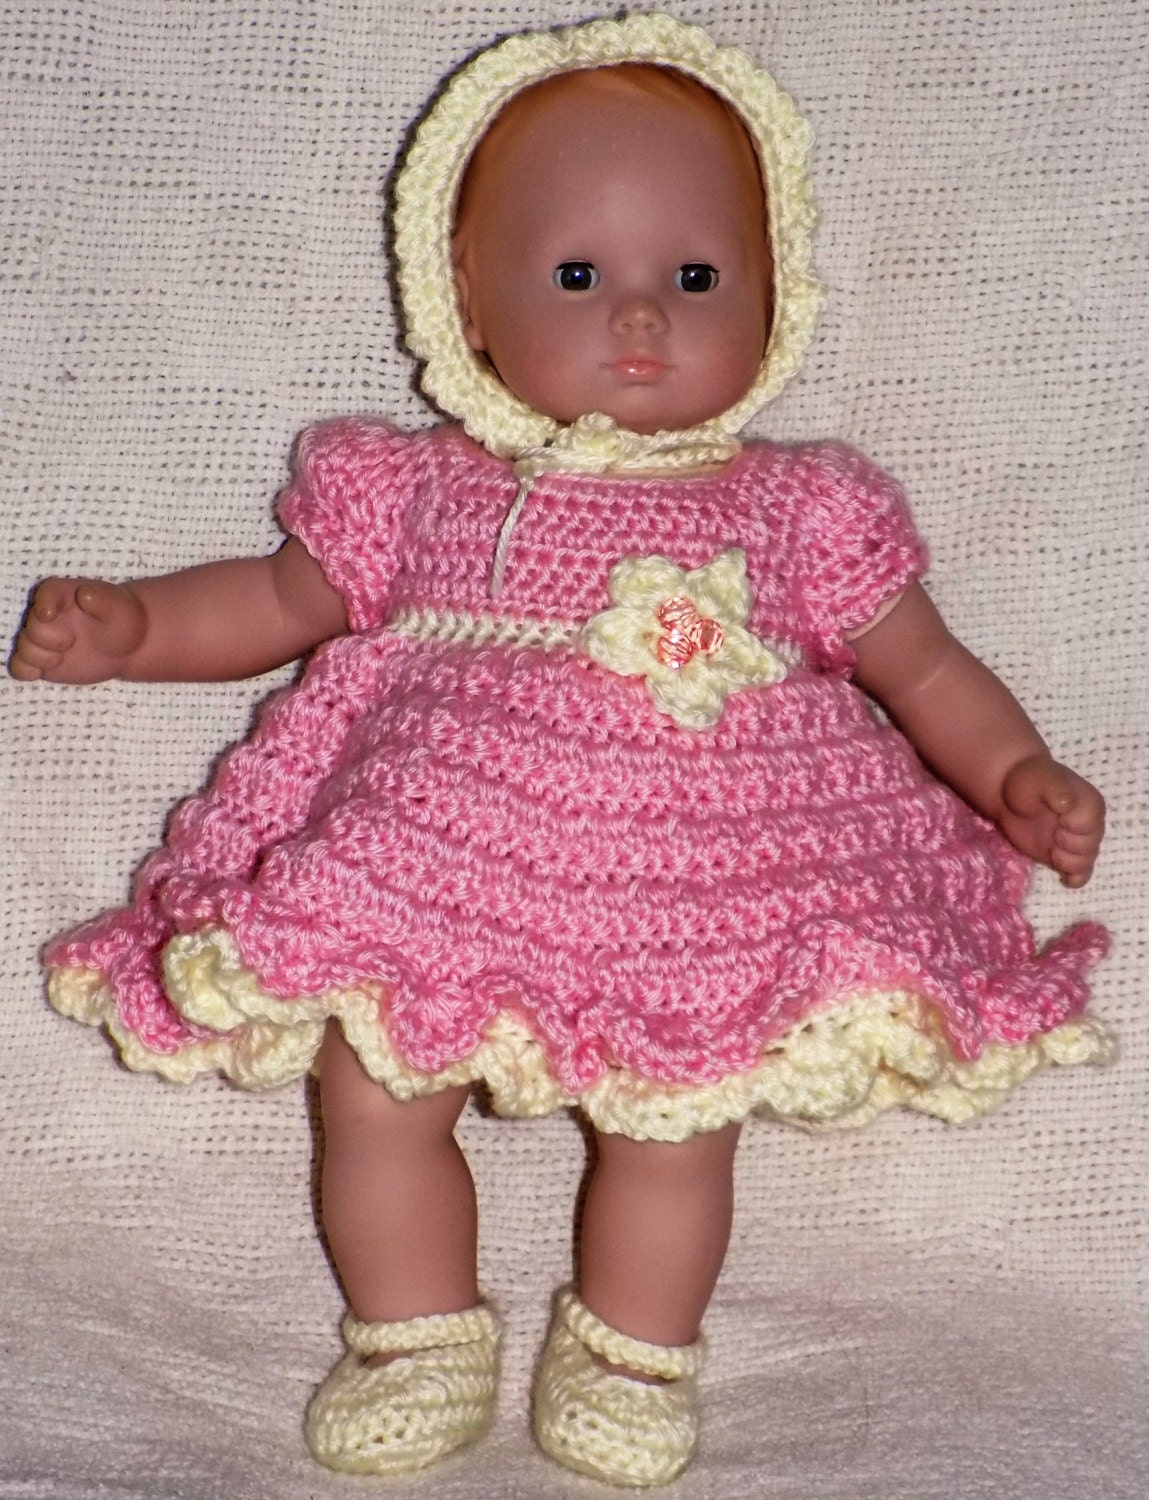 Bitty Baby Crochet Outfit- Complete Dress Outfit Crochet Pattern ...